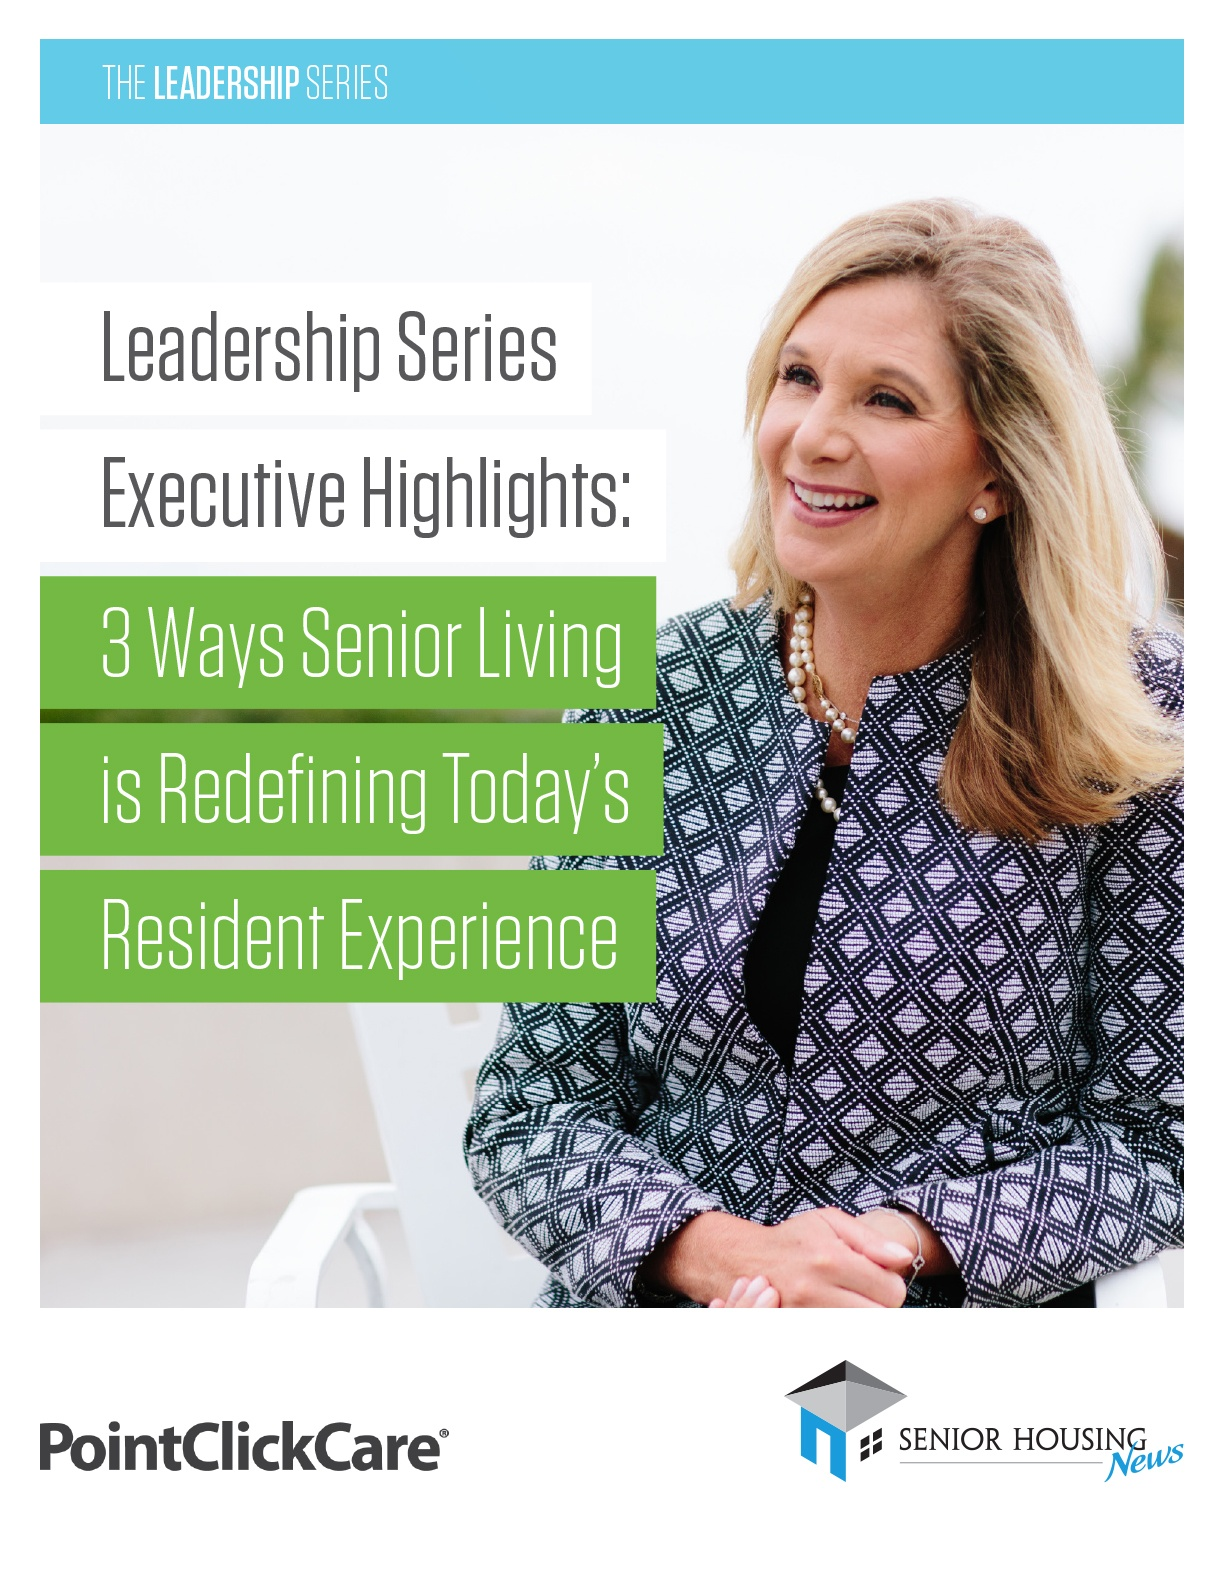 Leadership Series Executive Highlights: 3 Ways Senior Living is Redefining Today's Resident Experience